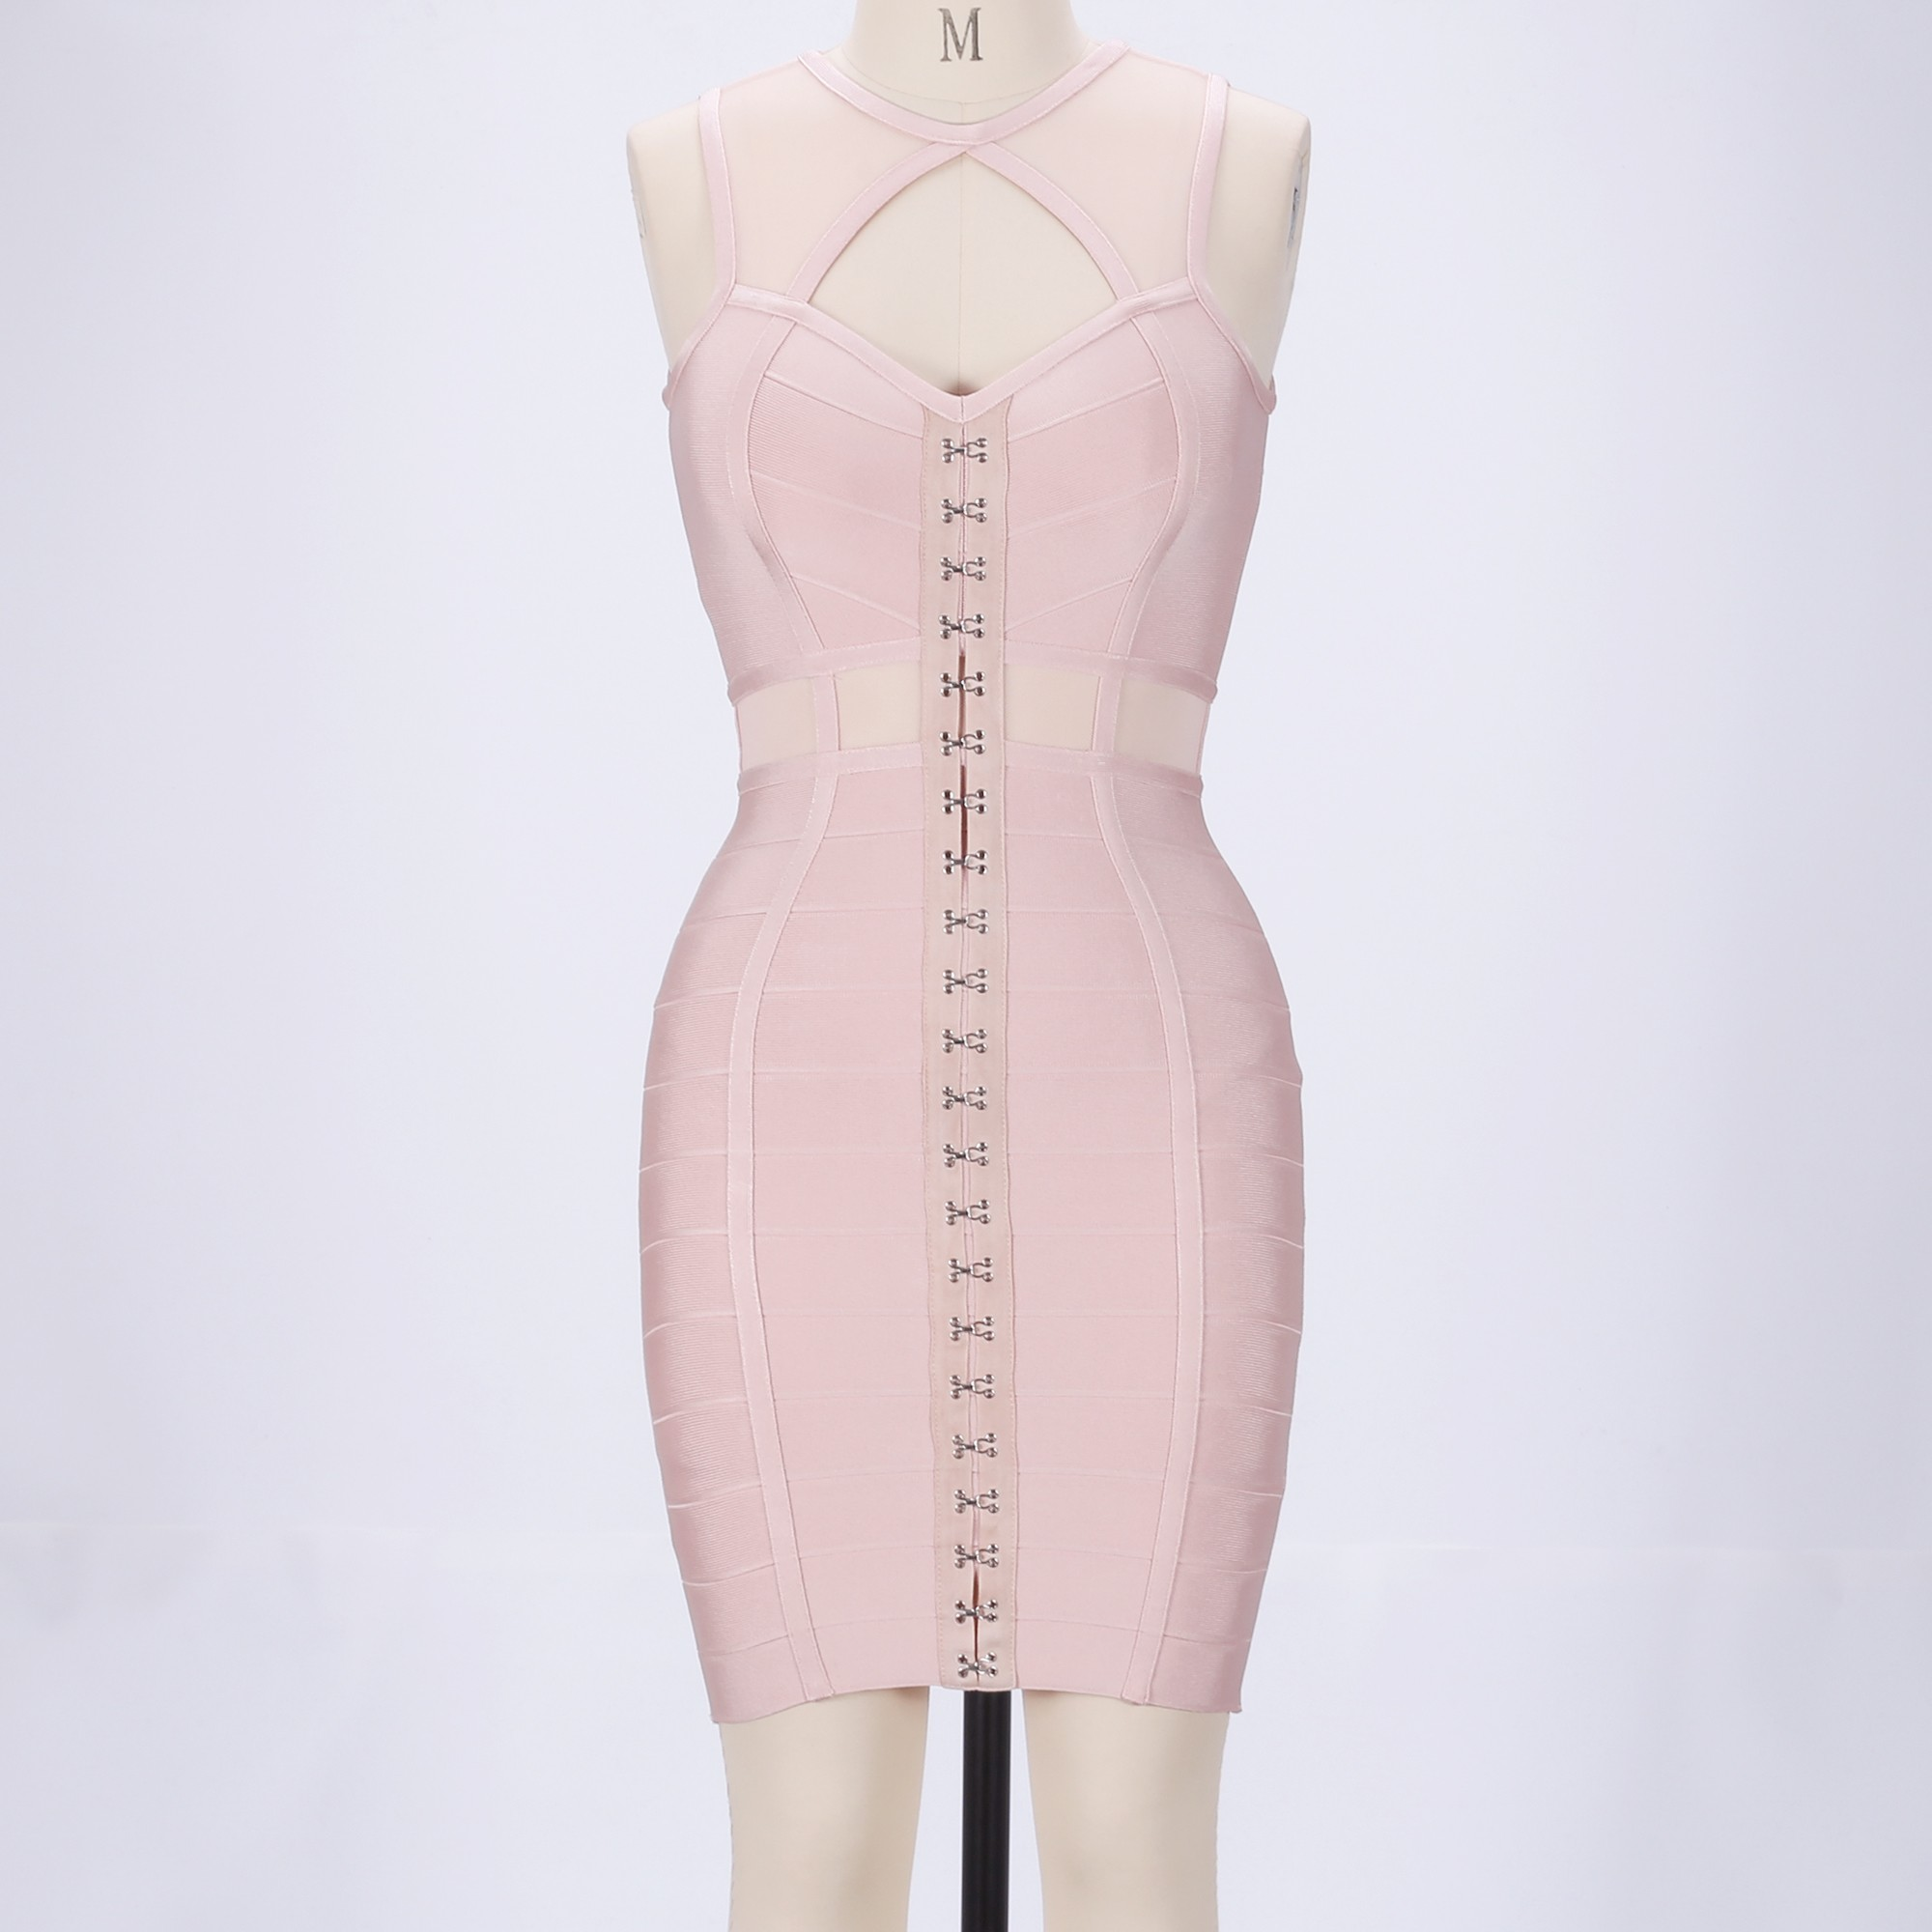 Rayon - Nude Round Neck Sleeveless Mini Mesh Cut Out Party Bandage Dress HJ457-Nude